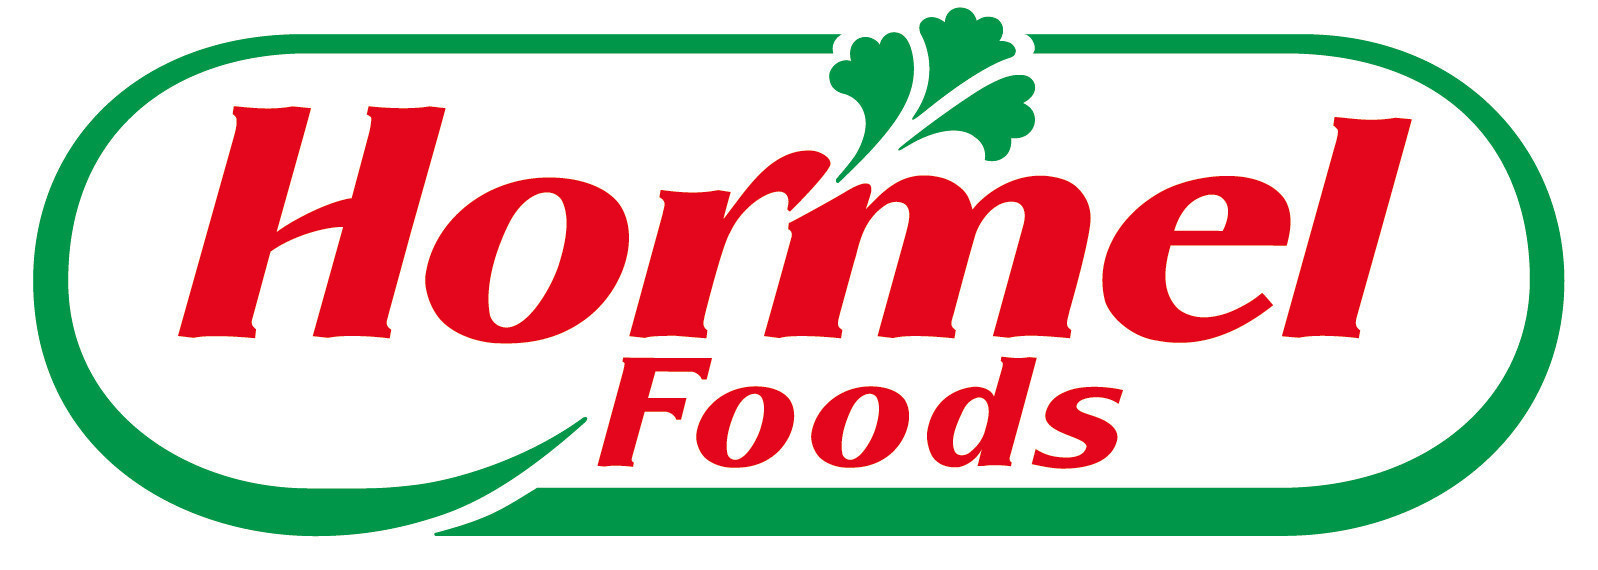 Hormel Foods Announces Third Quarter Results And Continued Progress Towards Key Strategic | Hormel Foods Corporation